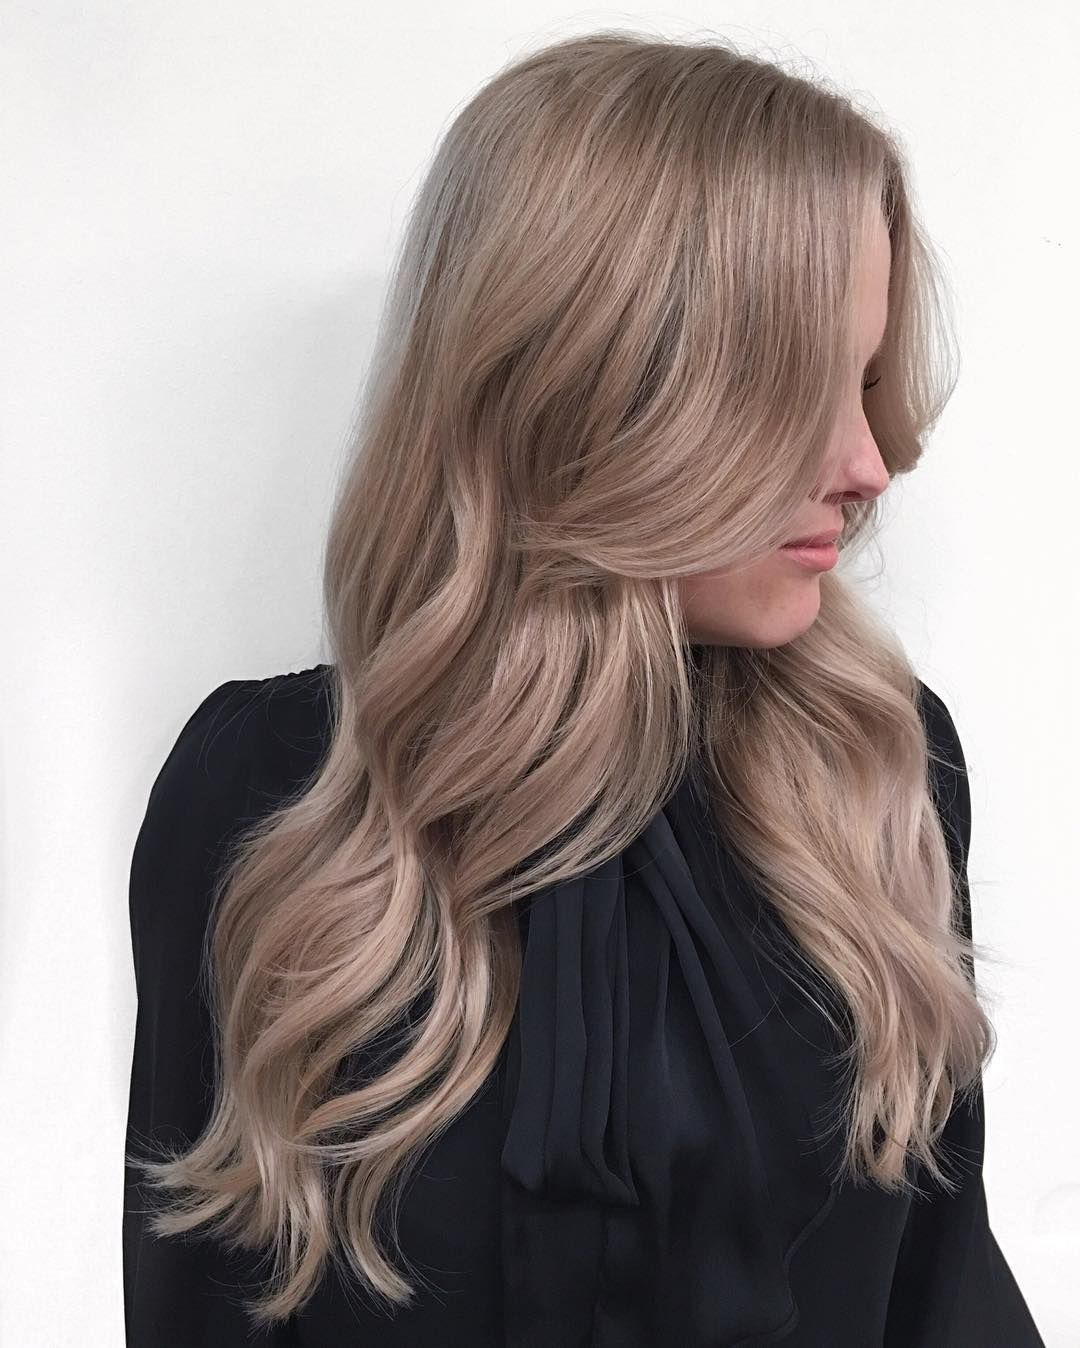 These bombshell blondes will convince you to lighten up your hair at your next visit to the salon